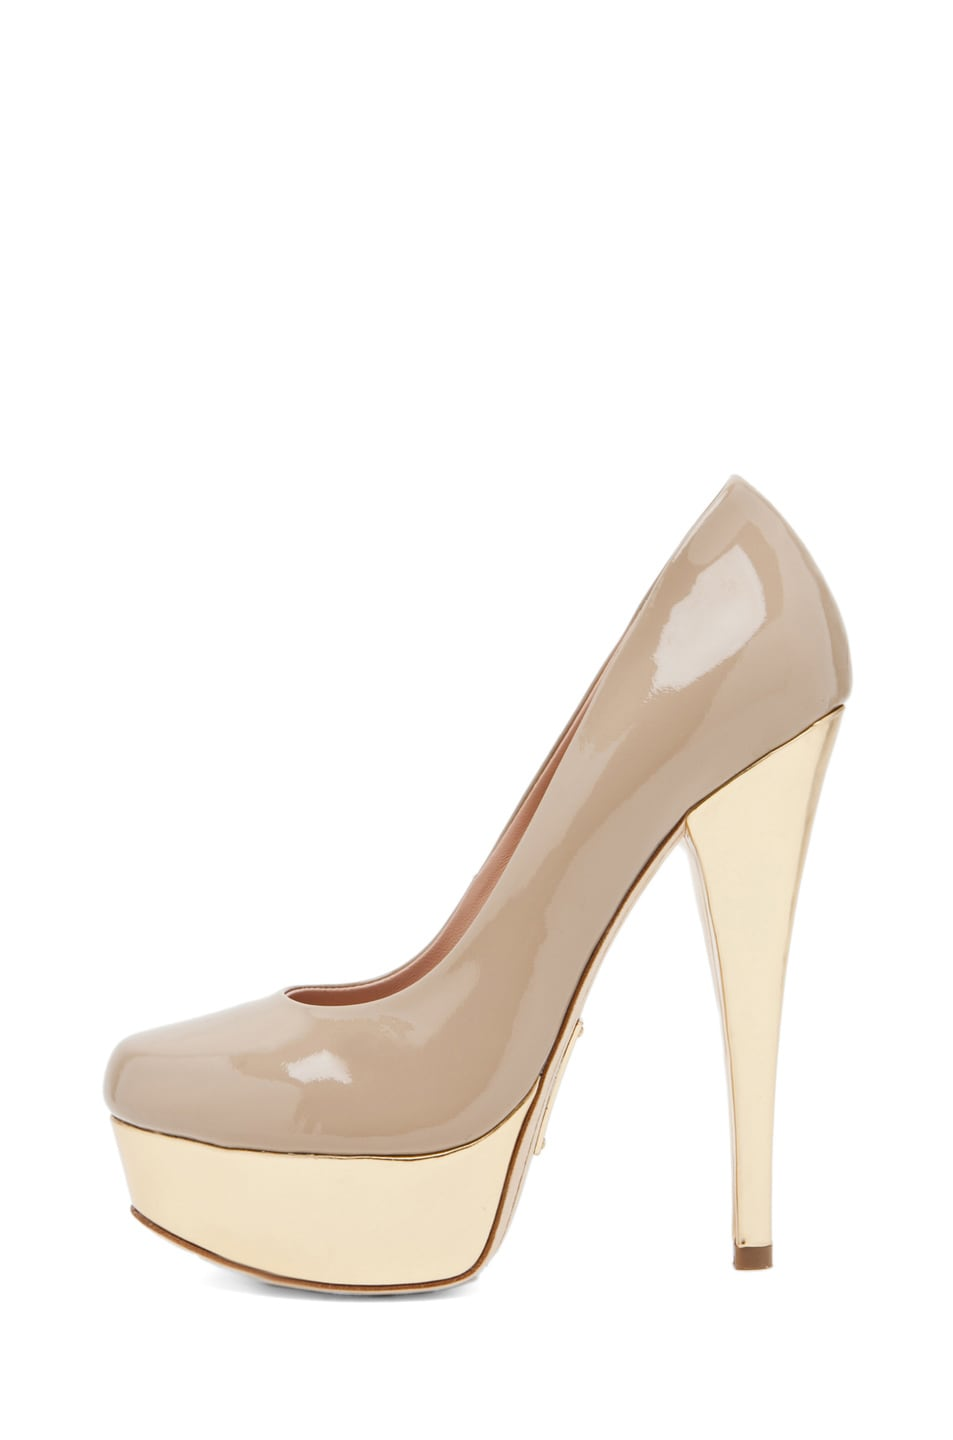 Image 1 of Alejandro Ingelmo Sophia Pump in Sand/Gold